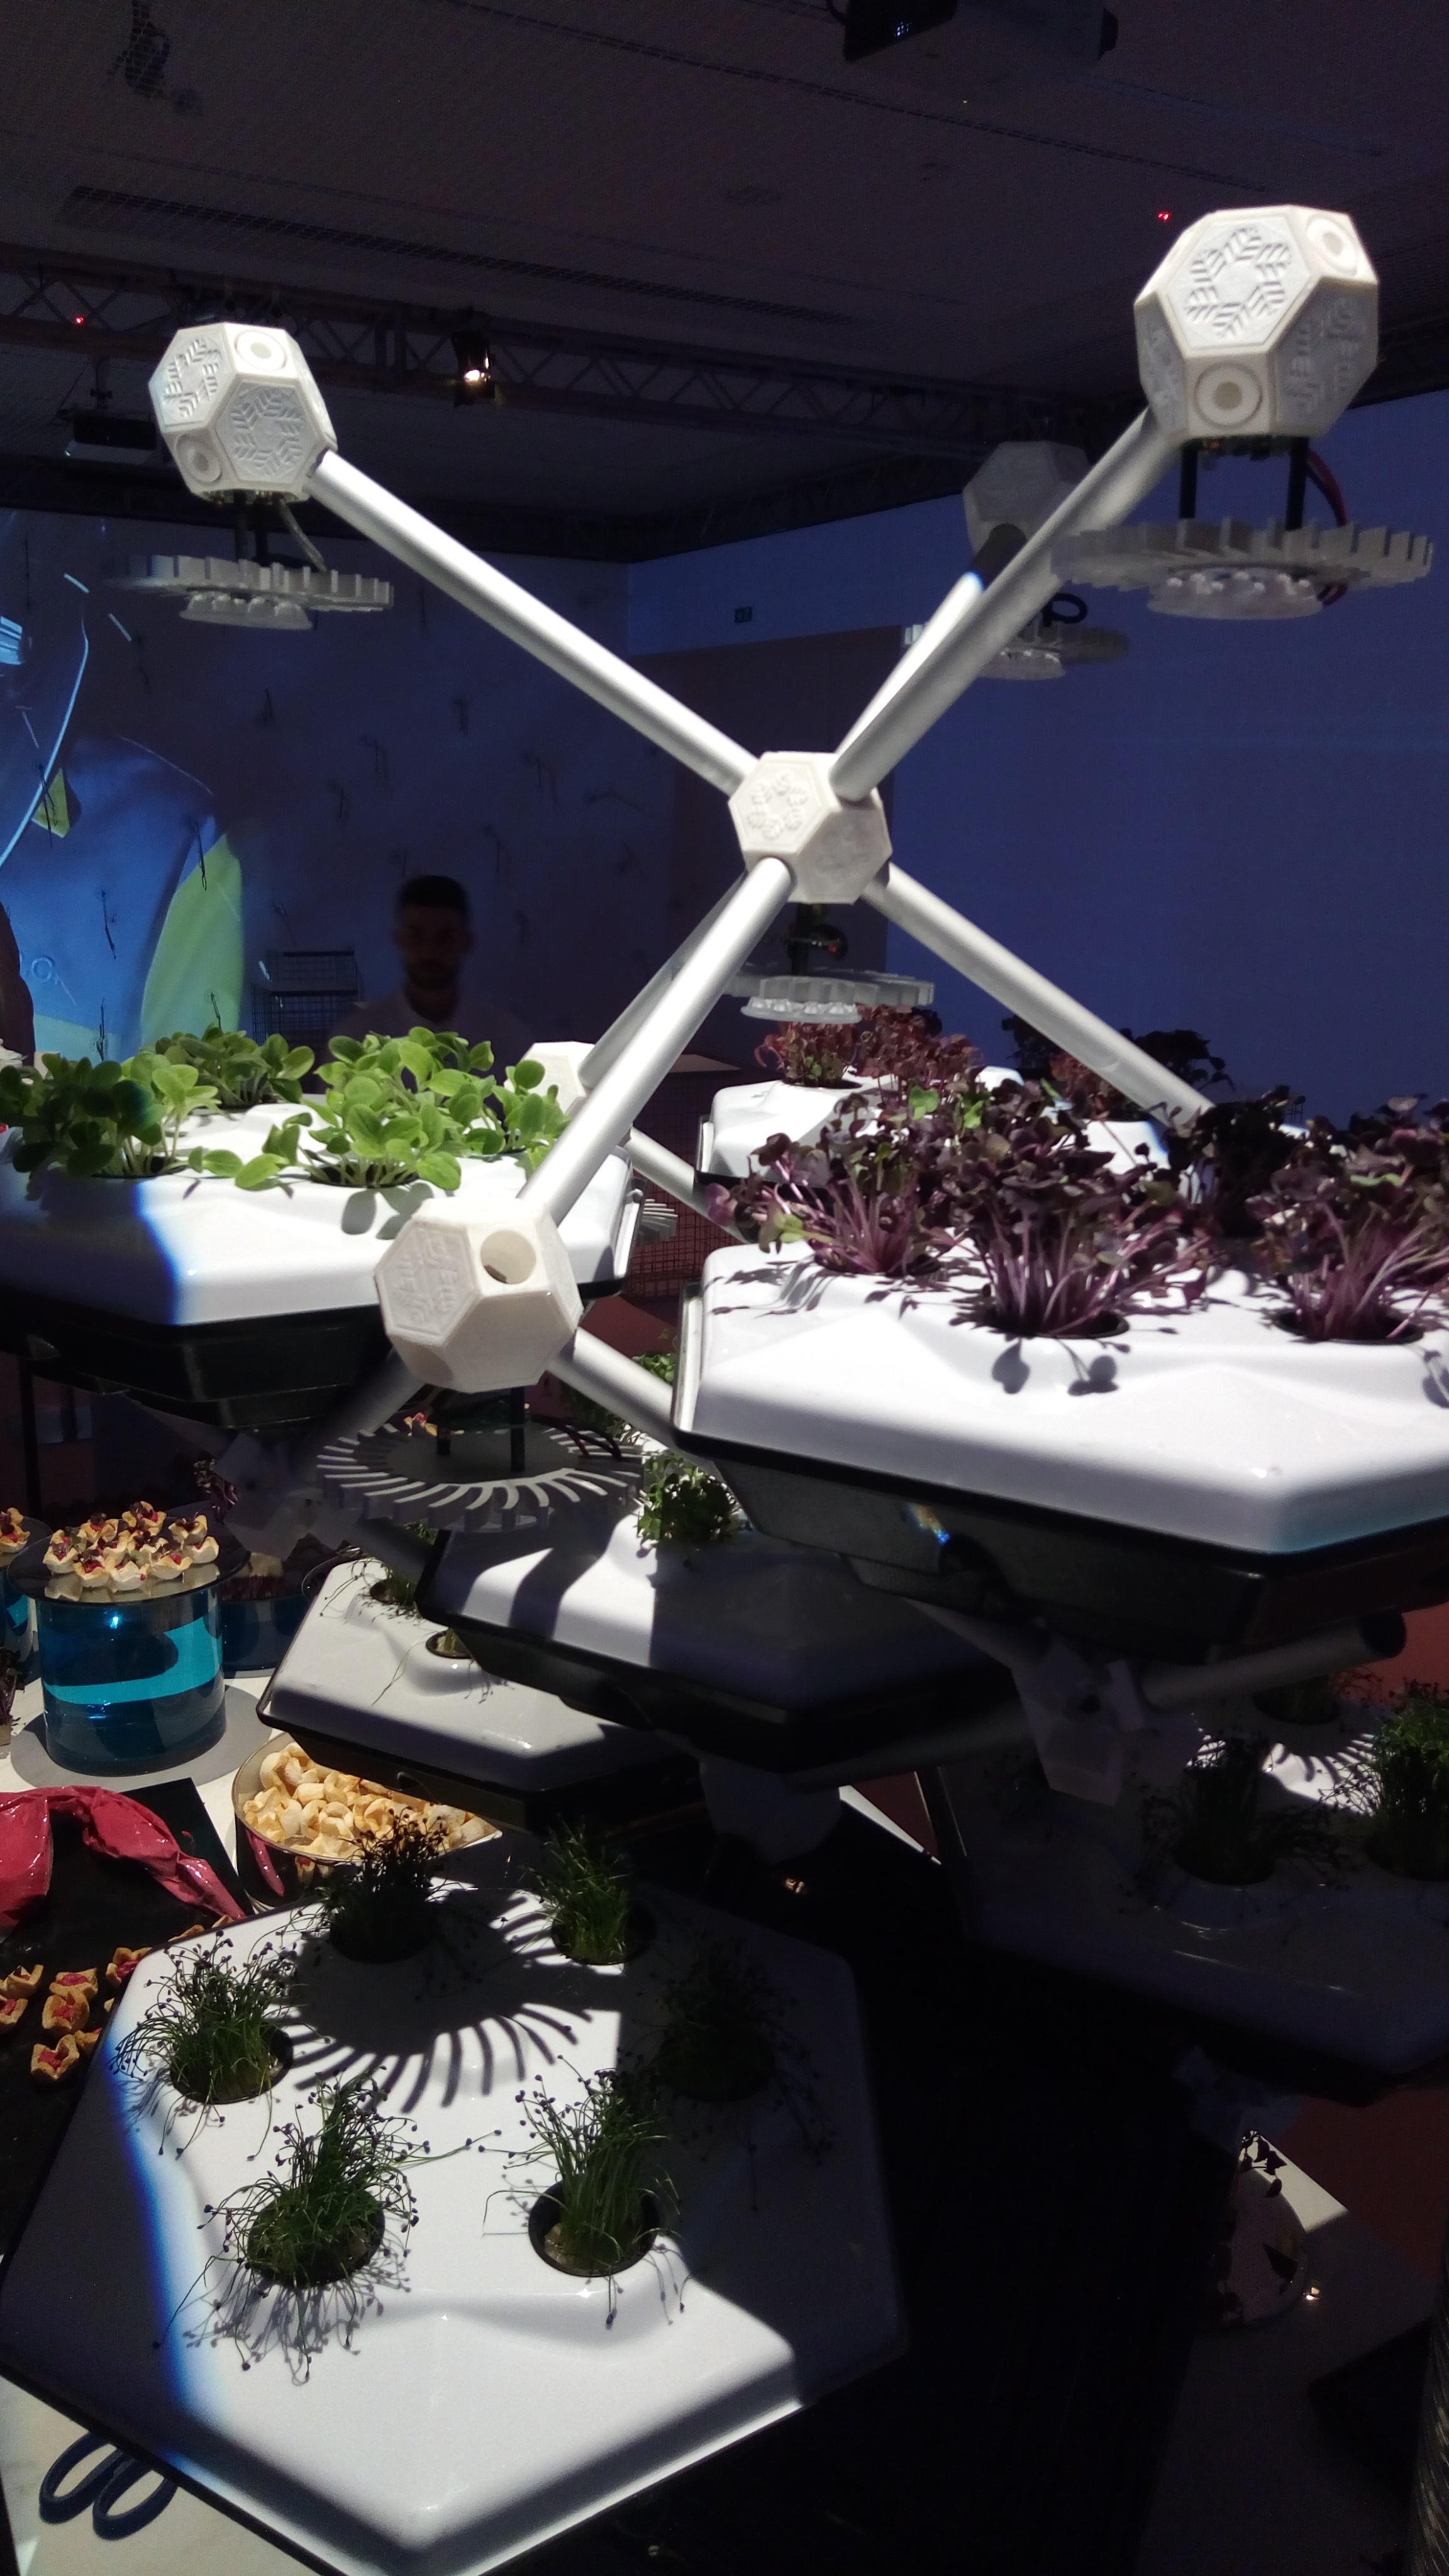 Hexagro Urban Farming